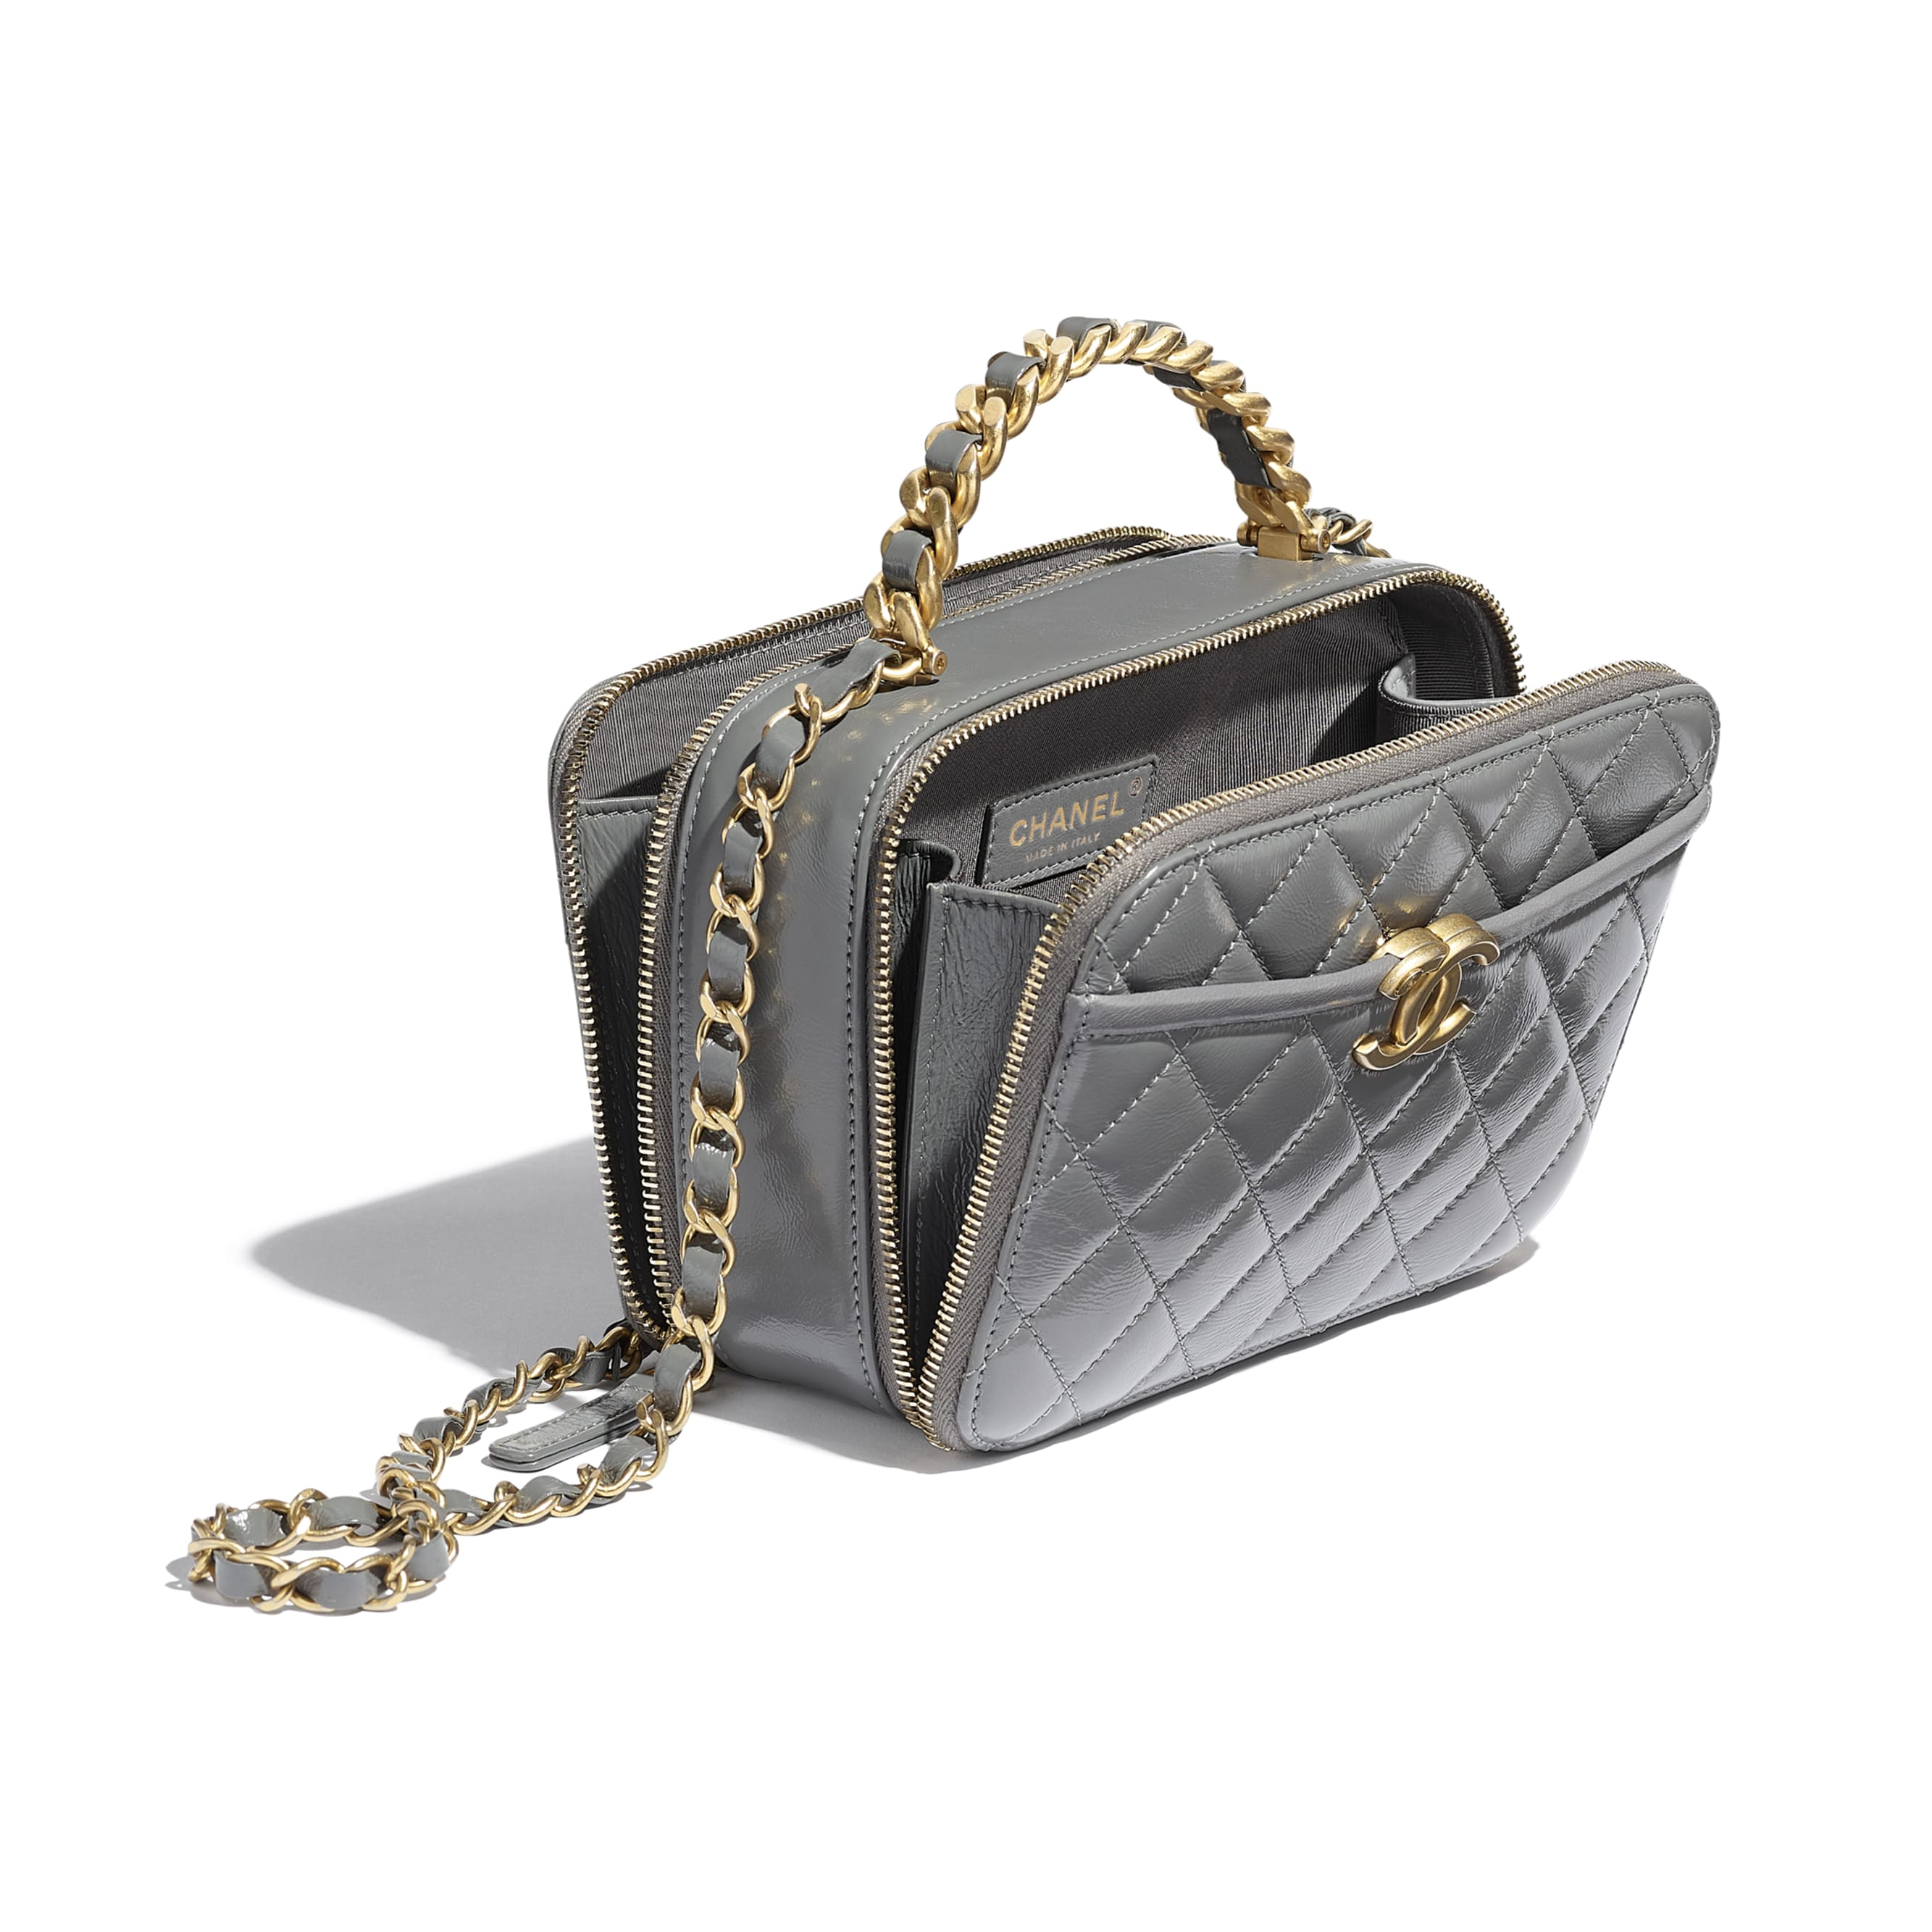 Vanity Case - Grey - Lambskin, Shiny Crumpled Calfskin & Gold-Tone Metal - CHANEL - Other view - see standard sized version